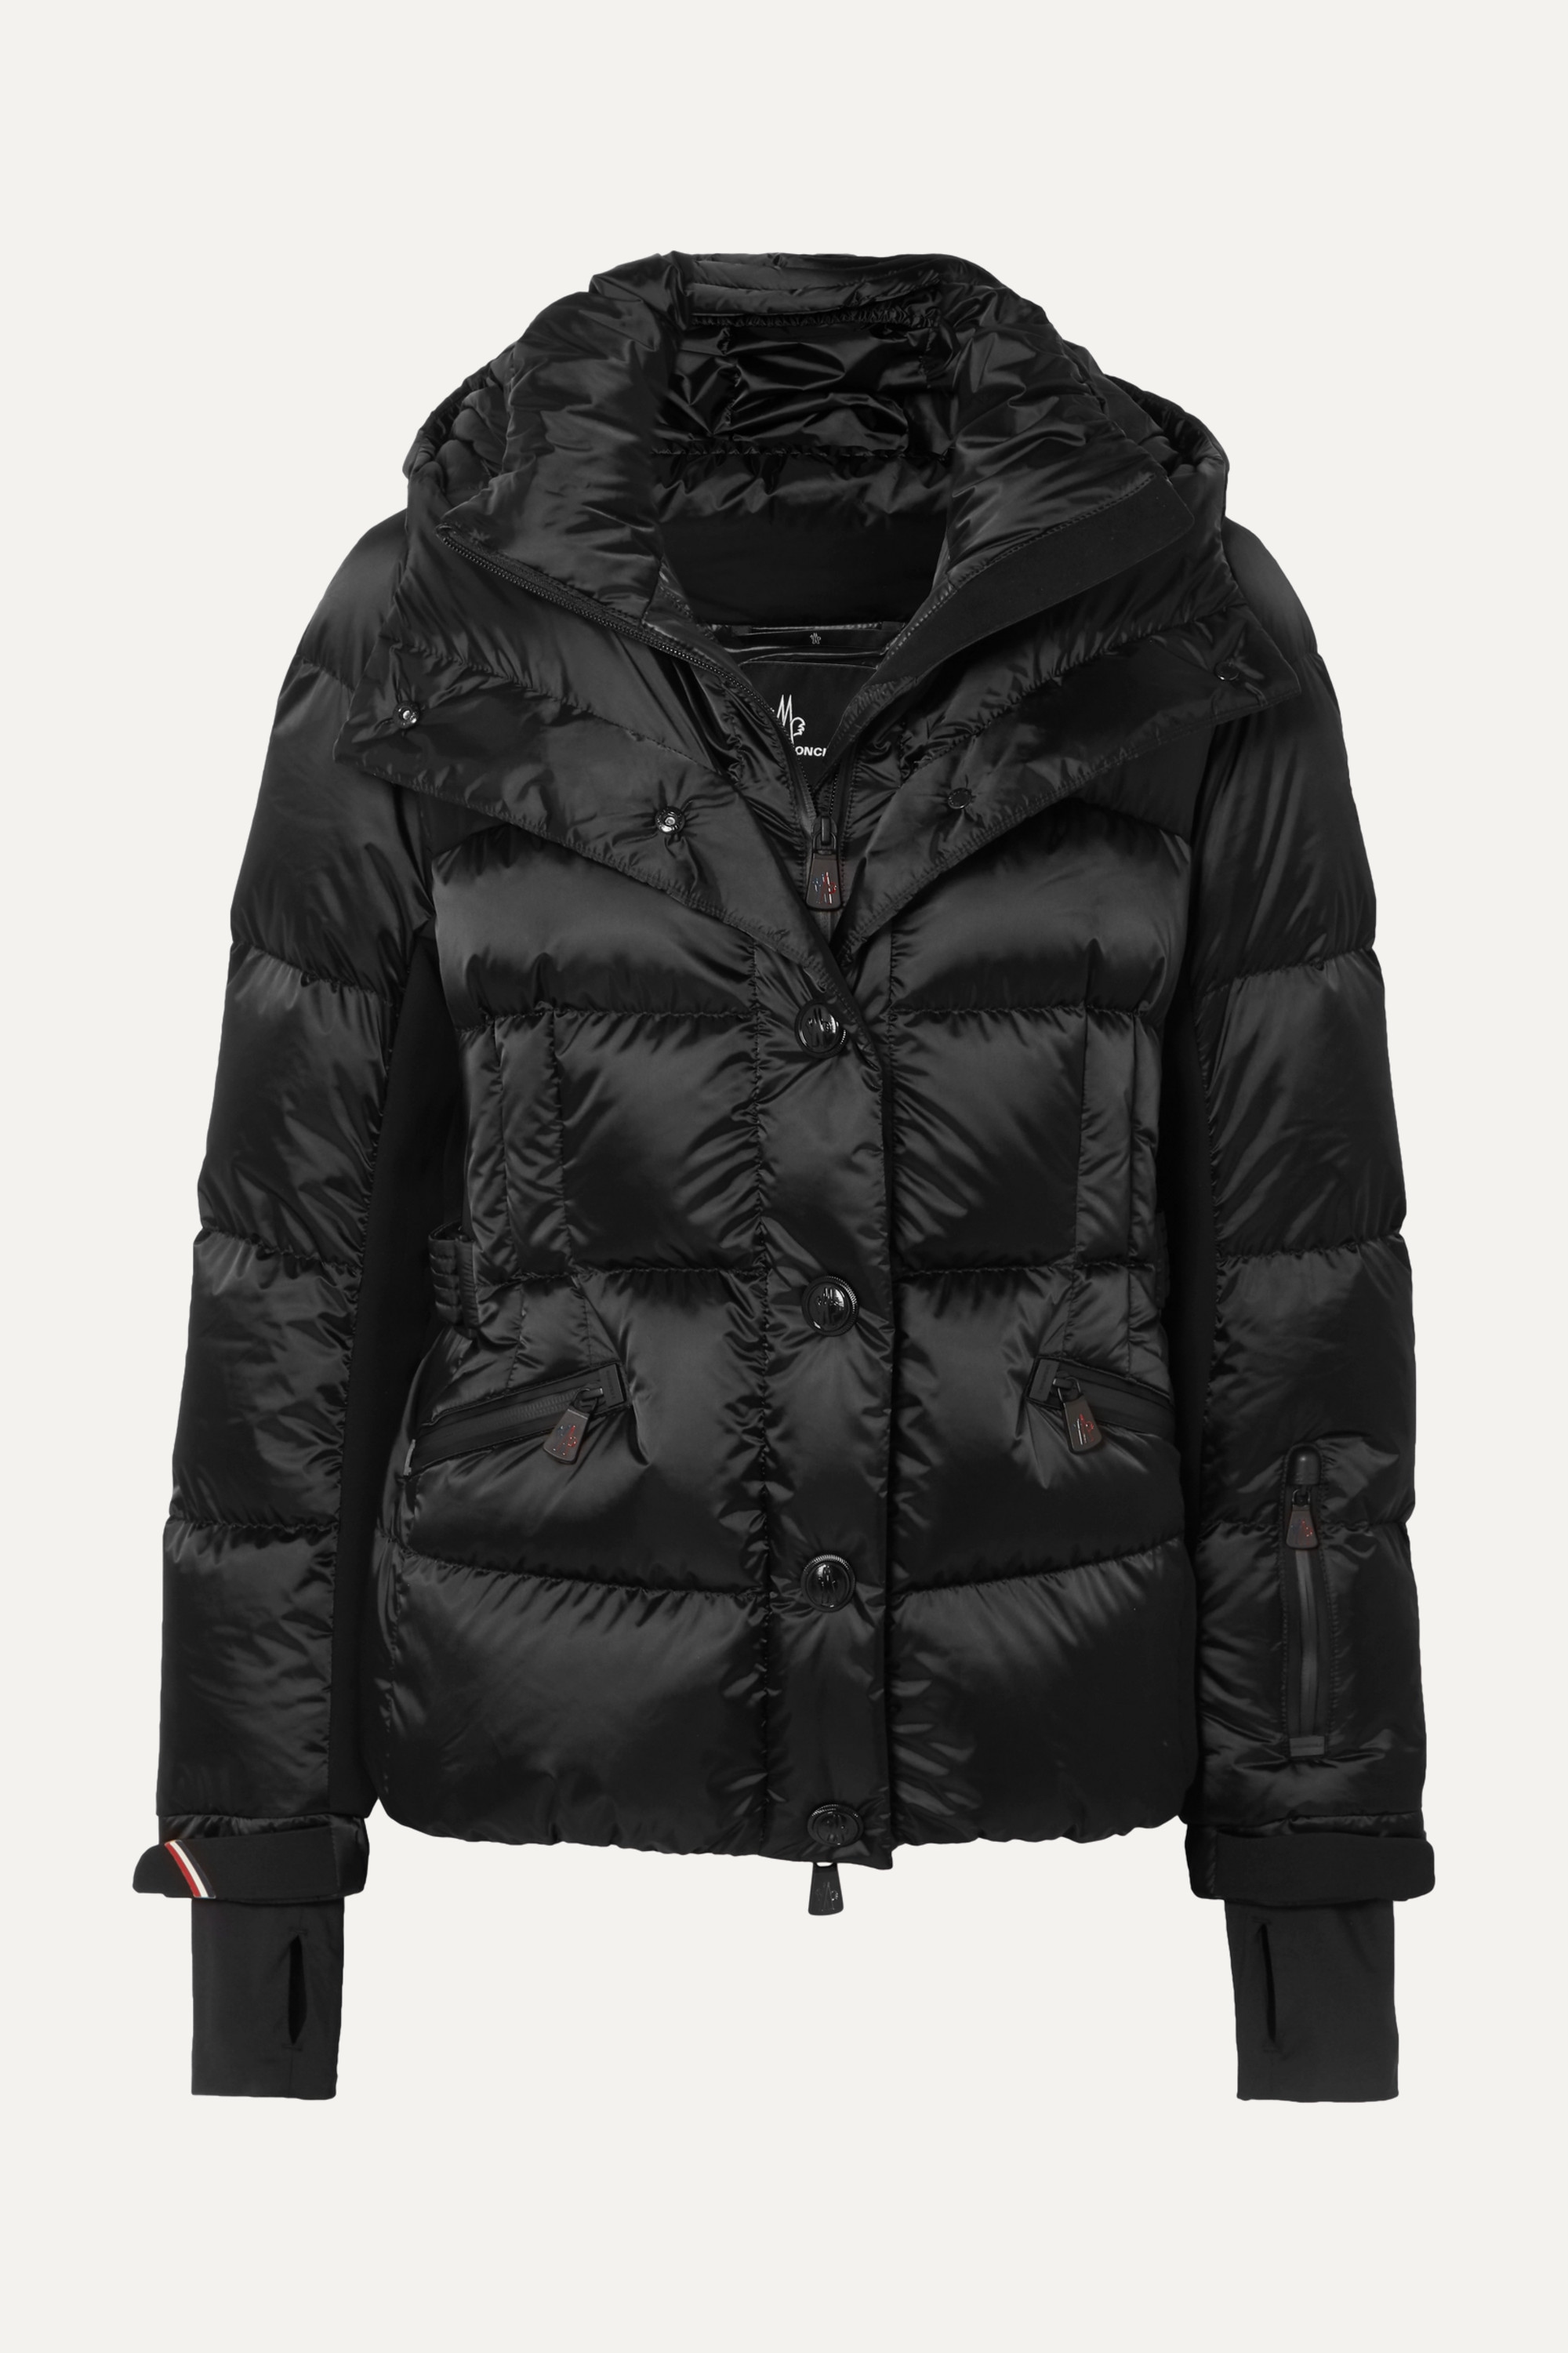 Moncler Grenoble Antabia quilted down shell jacket